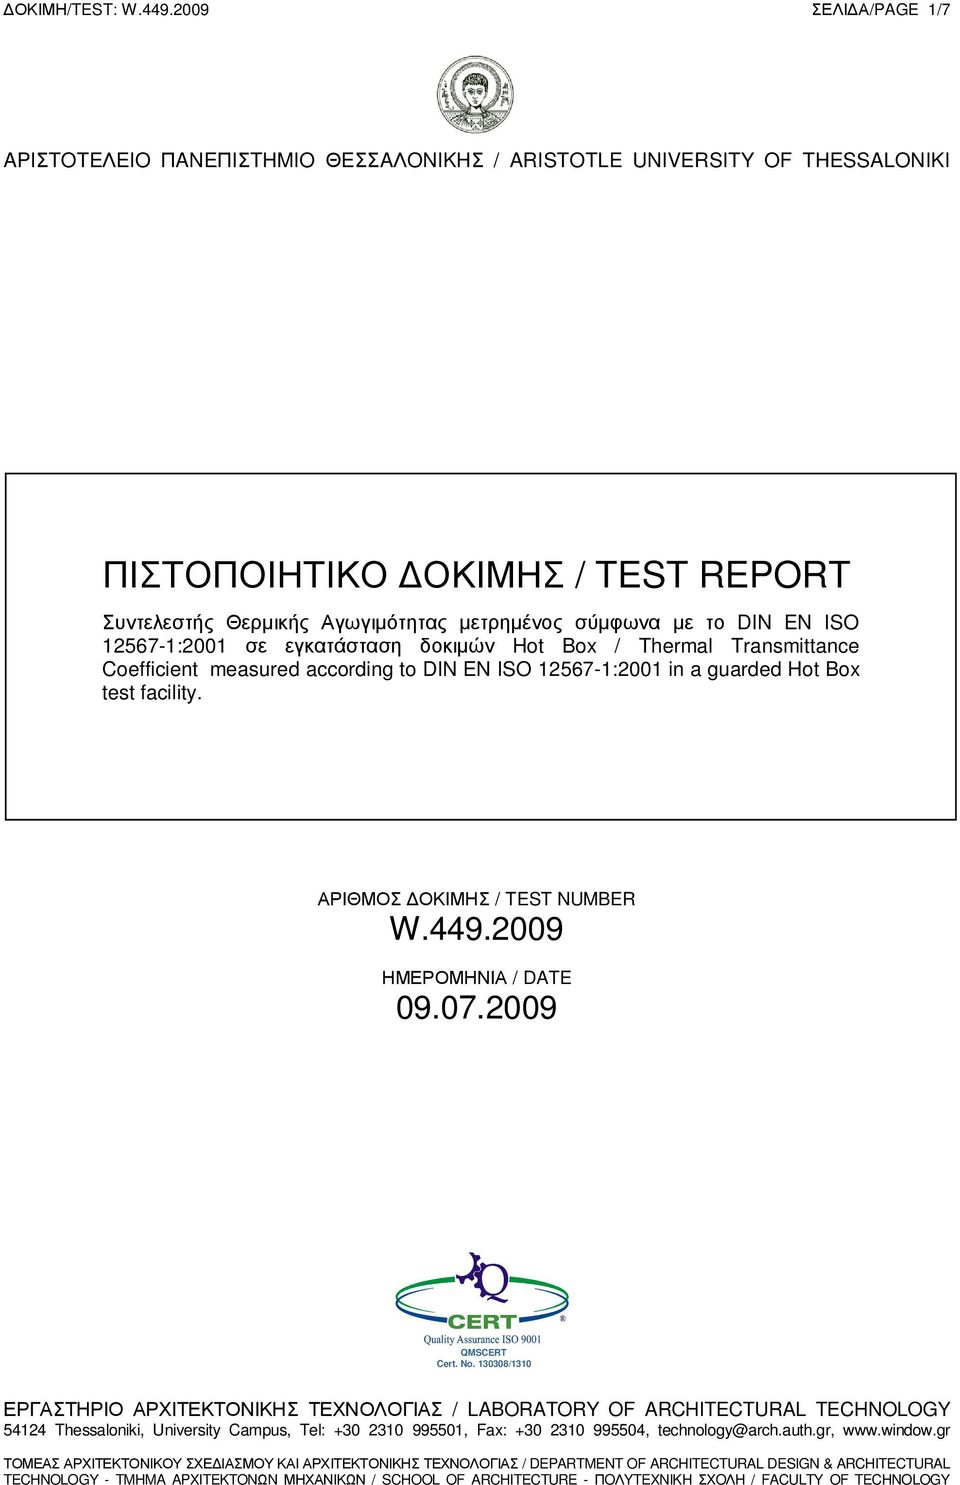 EN ISO 12567-1:2001 σε εγκατάσταση δοκιμών Hot Box / Thermal Transmittance Coefficient meaed according to DIN EN ISO 12567-1:2001 in a guarded Hot Box test facility. ΑΡΙΘΜΟΣ ΔΟΚΙΜΗΣ / TEST NUMBER W.